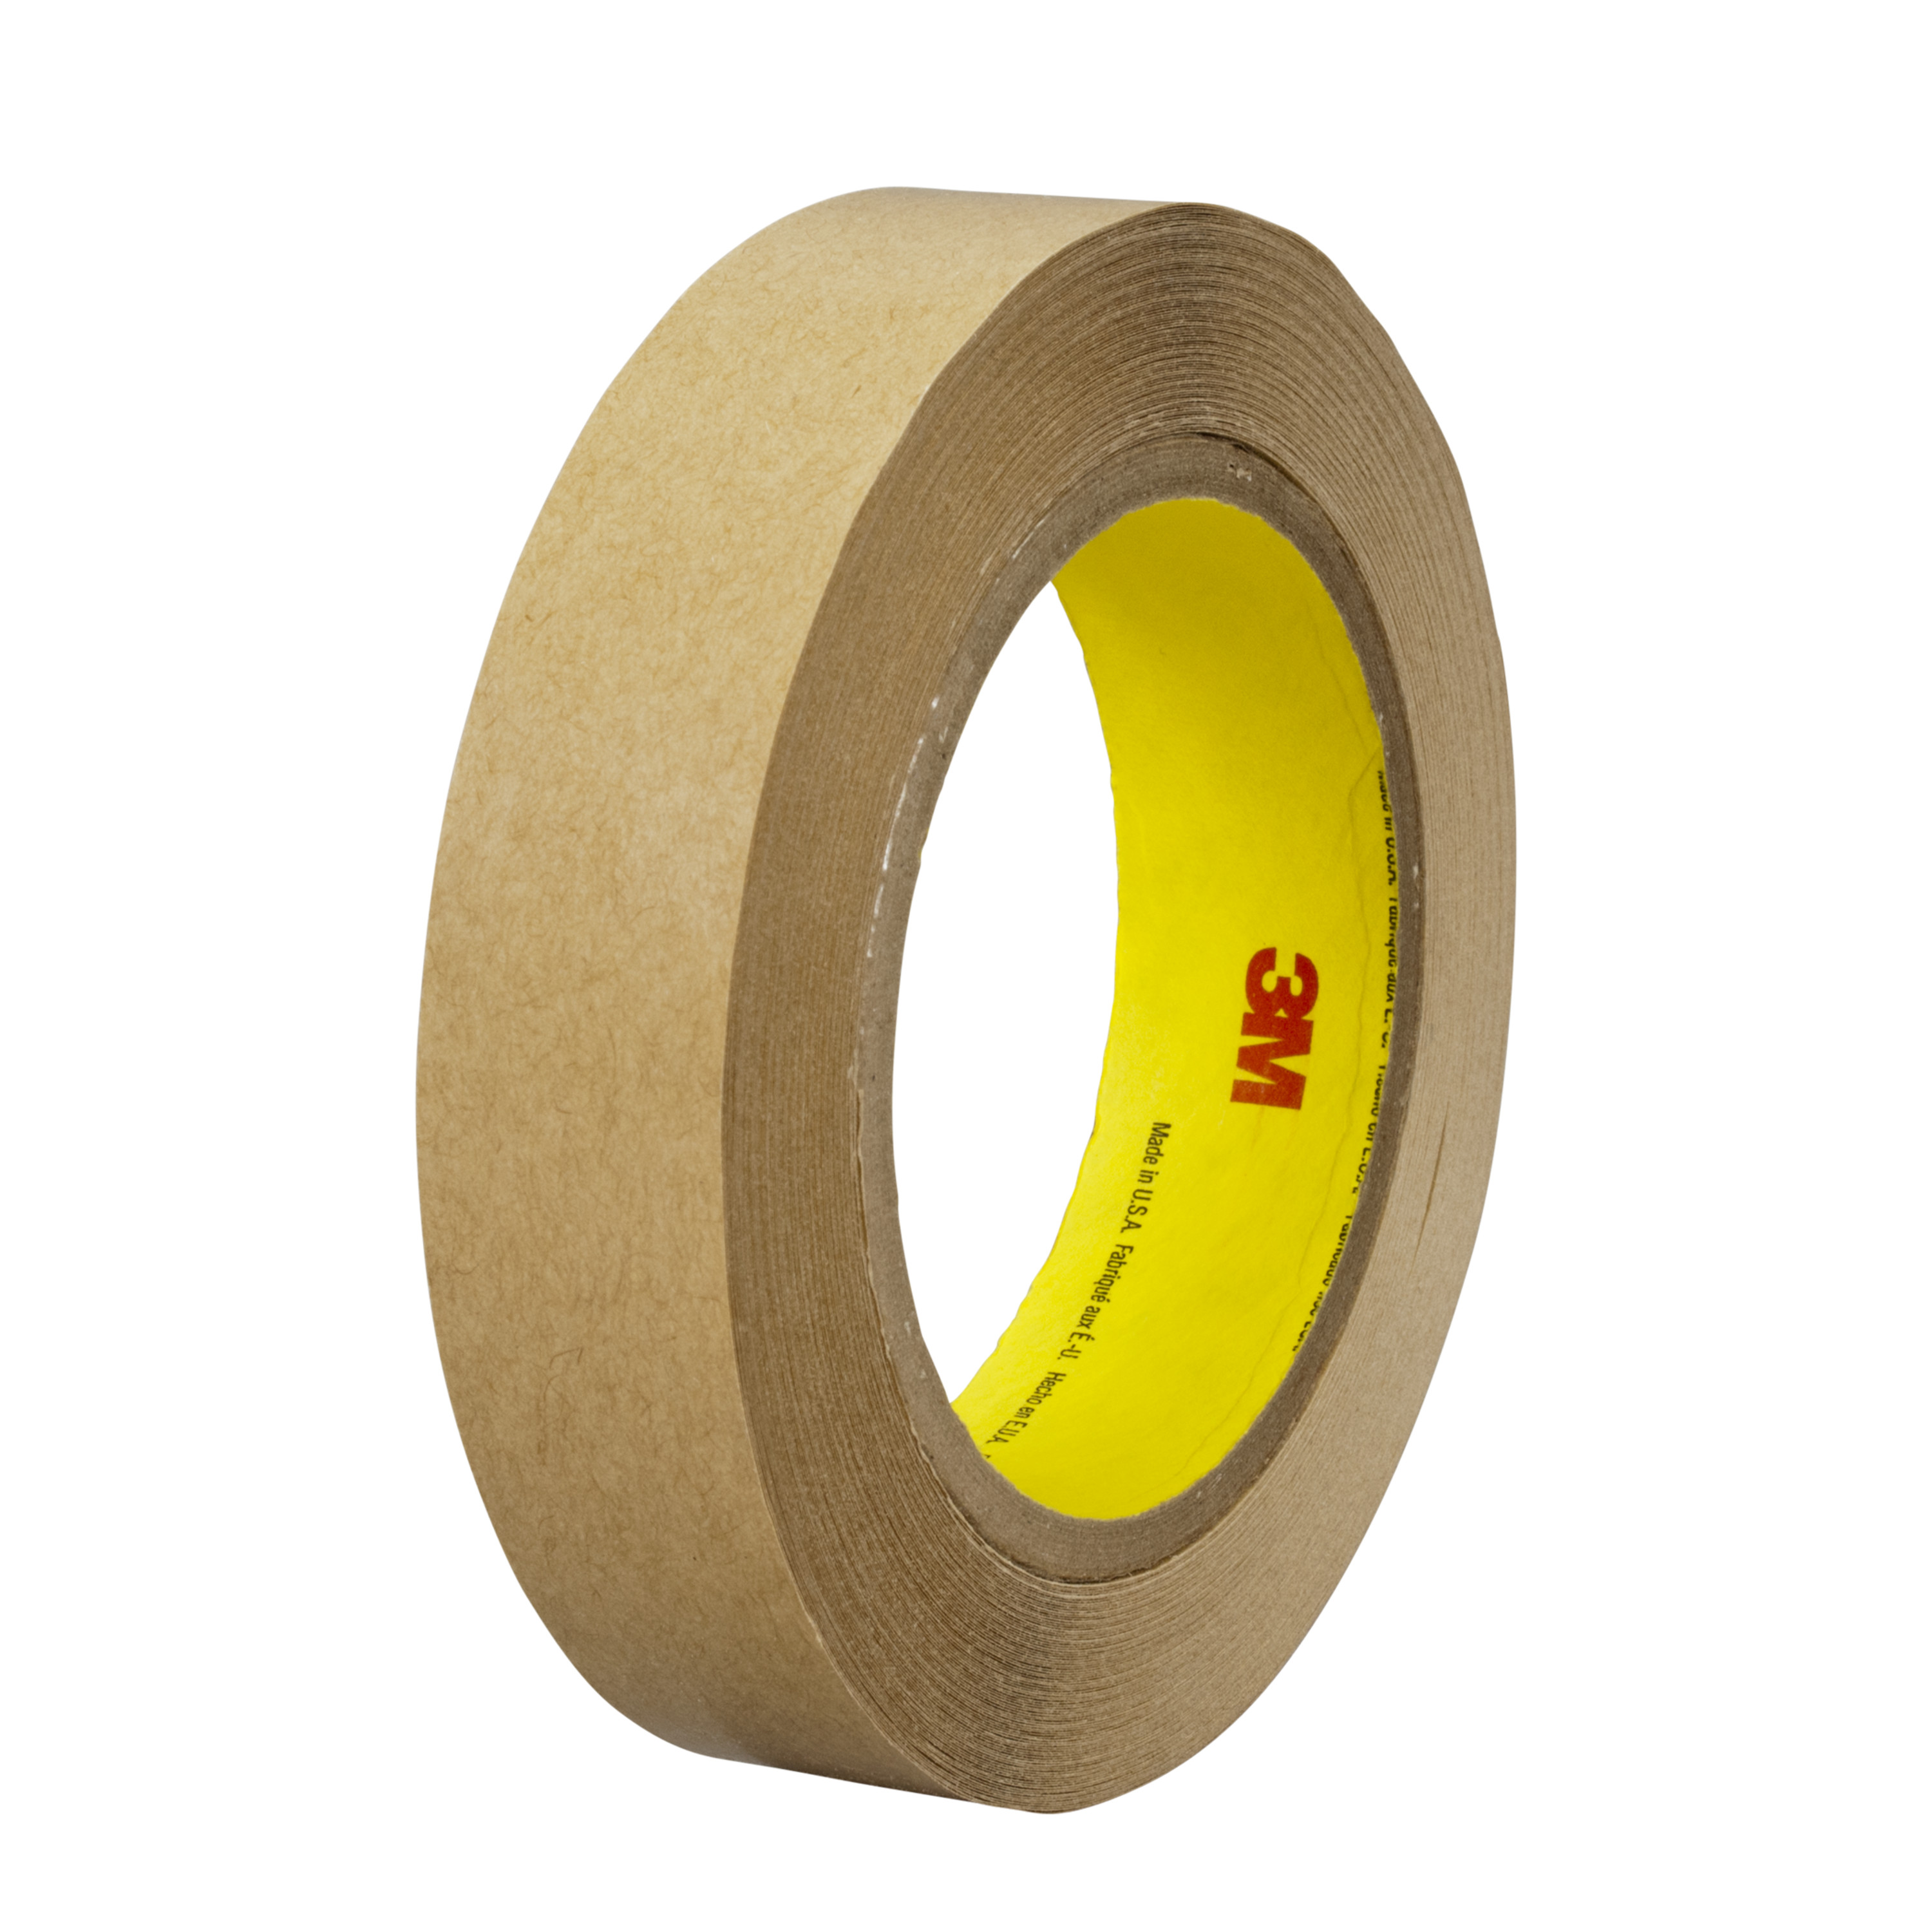 3M™ Adhesive Transfer Tape Extended Liner 9934XL, Translucent, 4 mil, Roll, Config